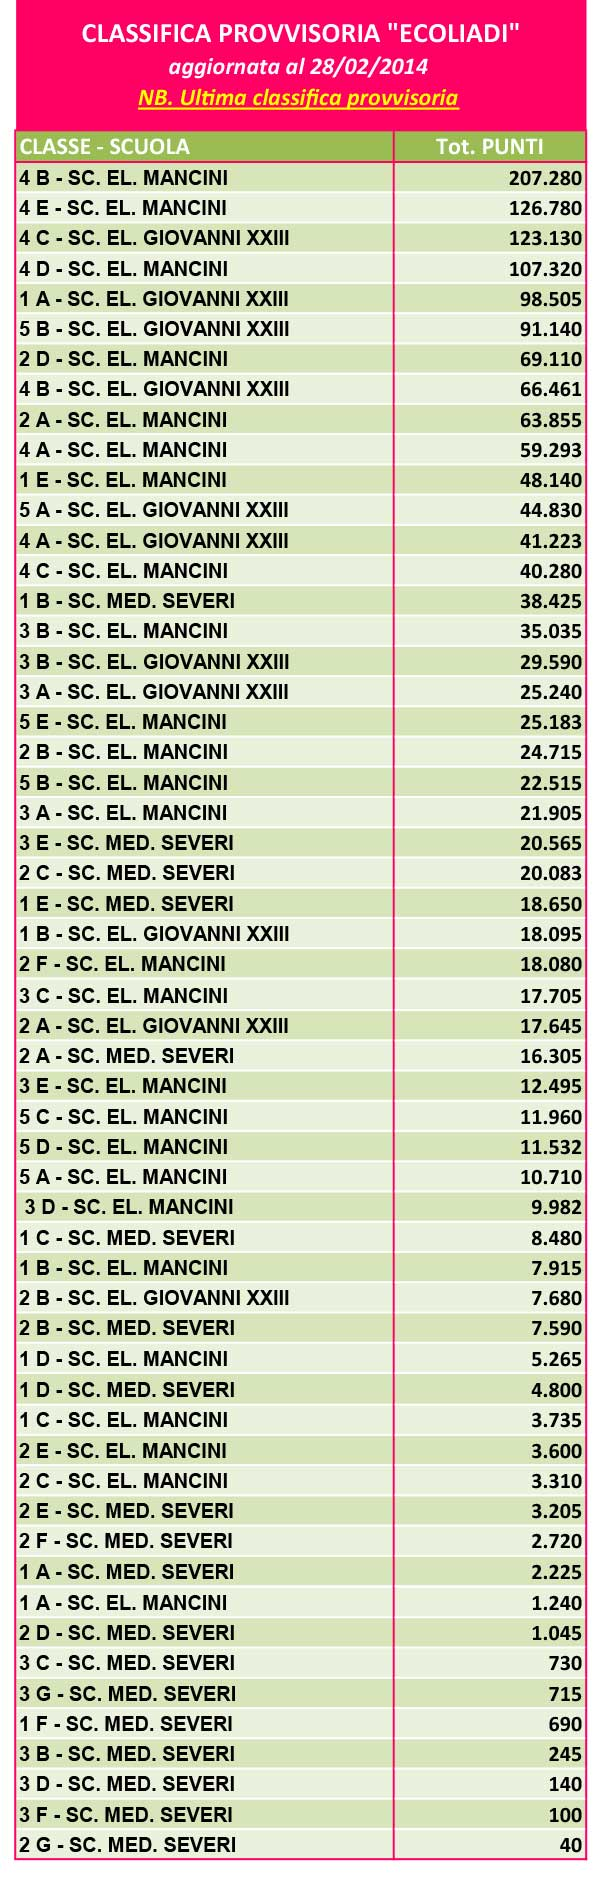 classifica-ecoliadi-crispiano-generale